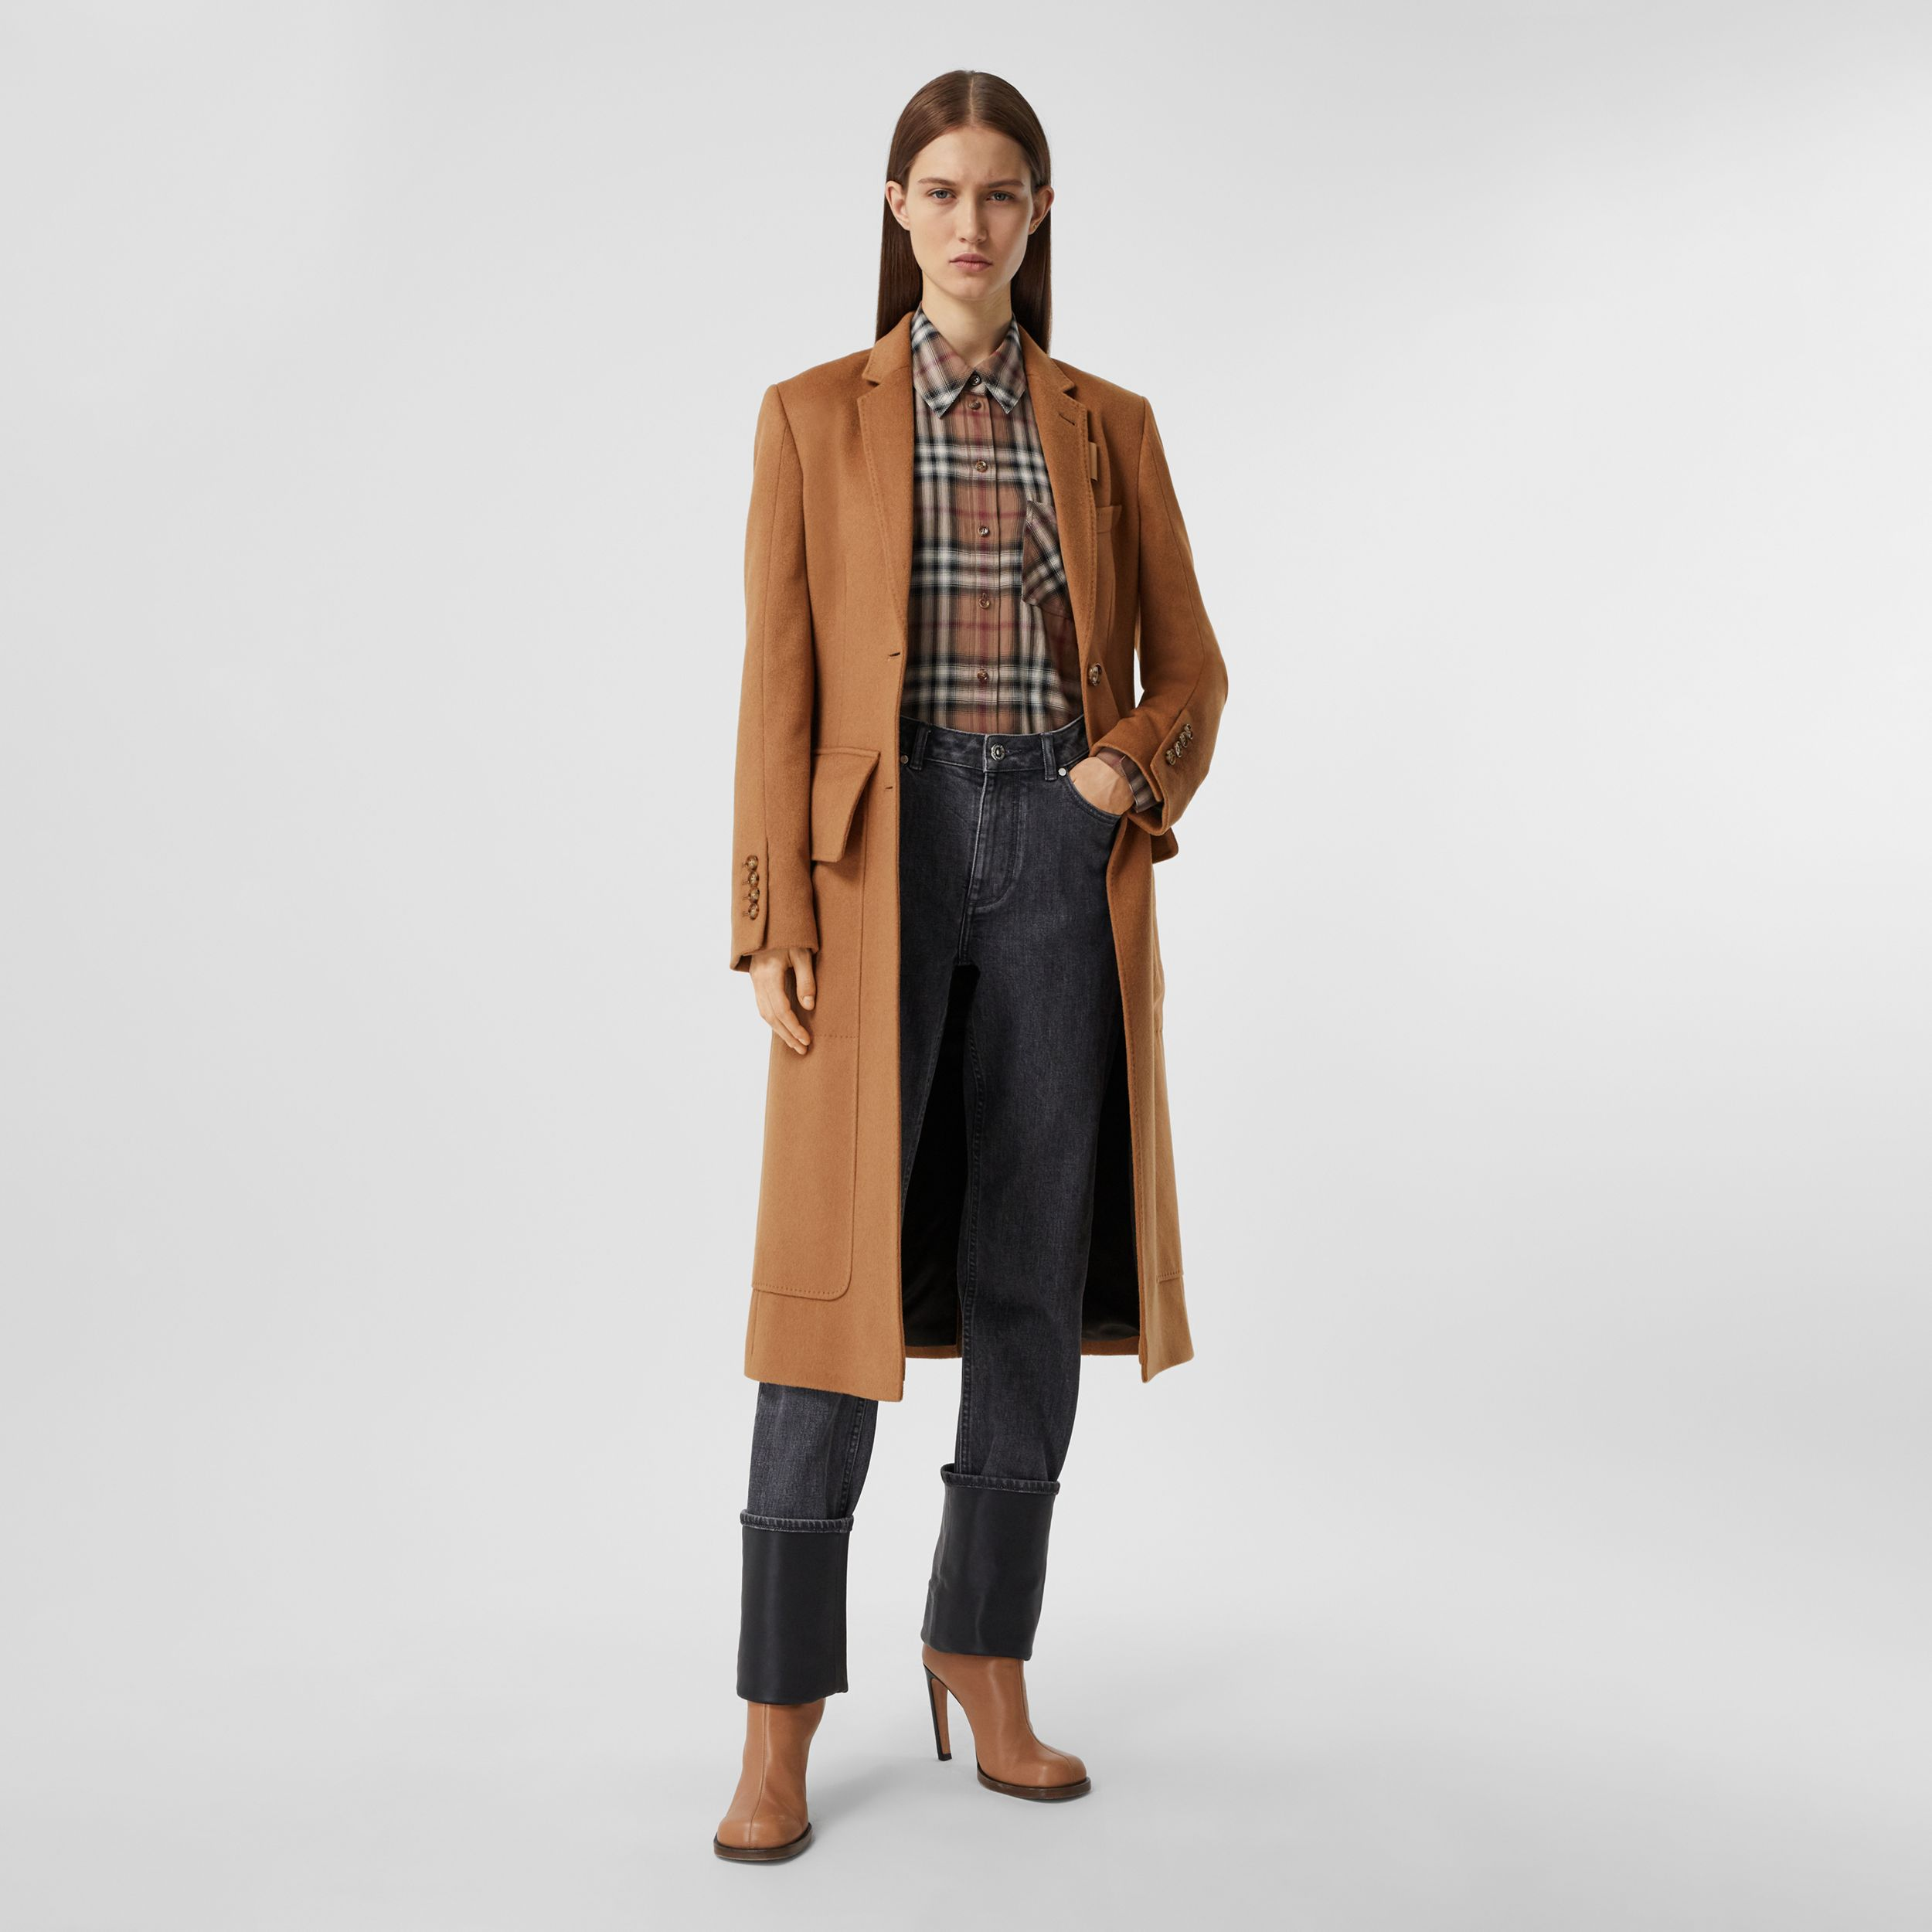 Cashmere Tailored Coat in Bronze - Women | Burberry - 1